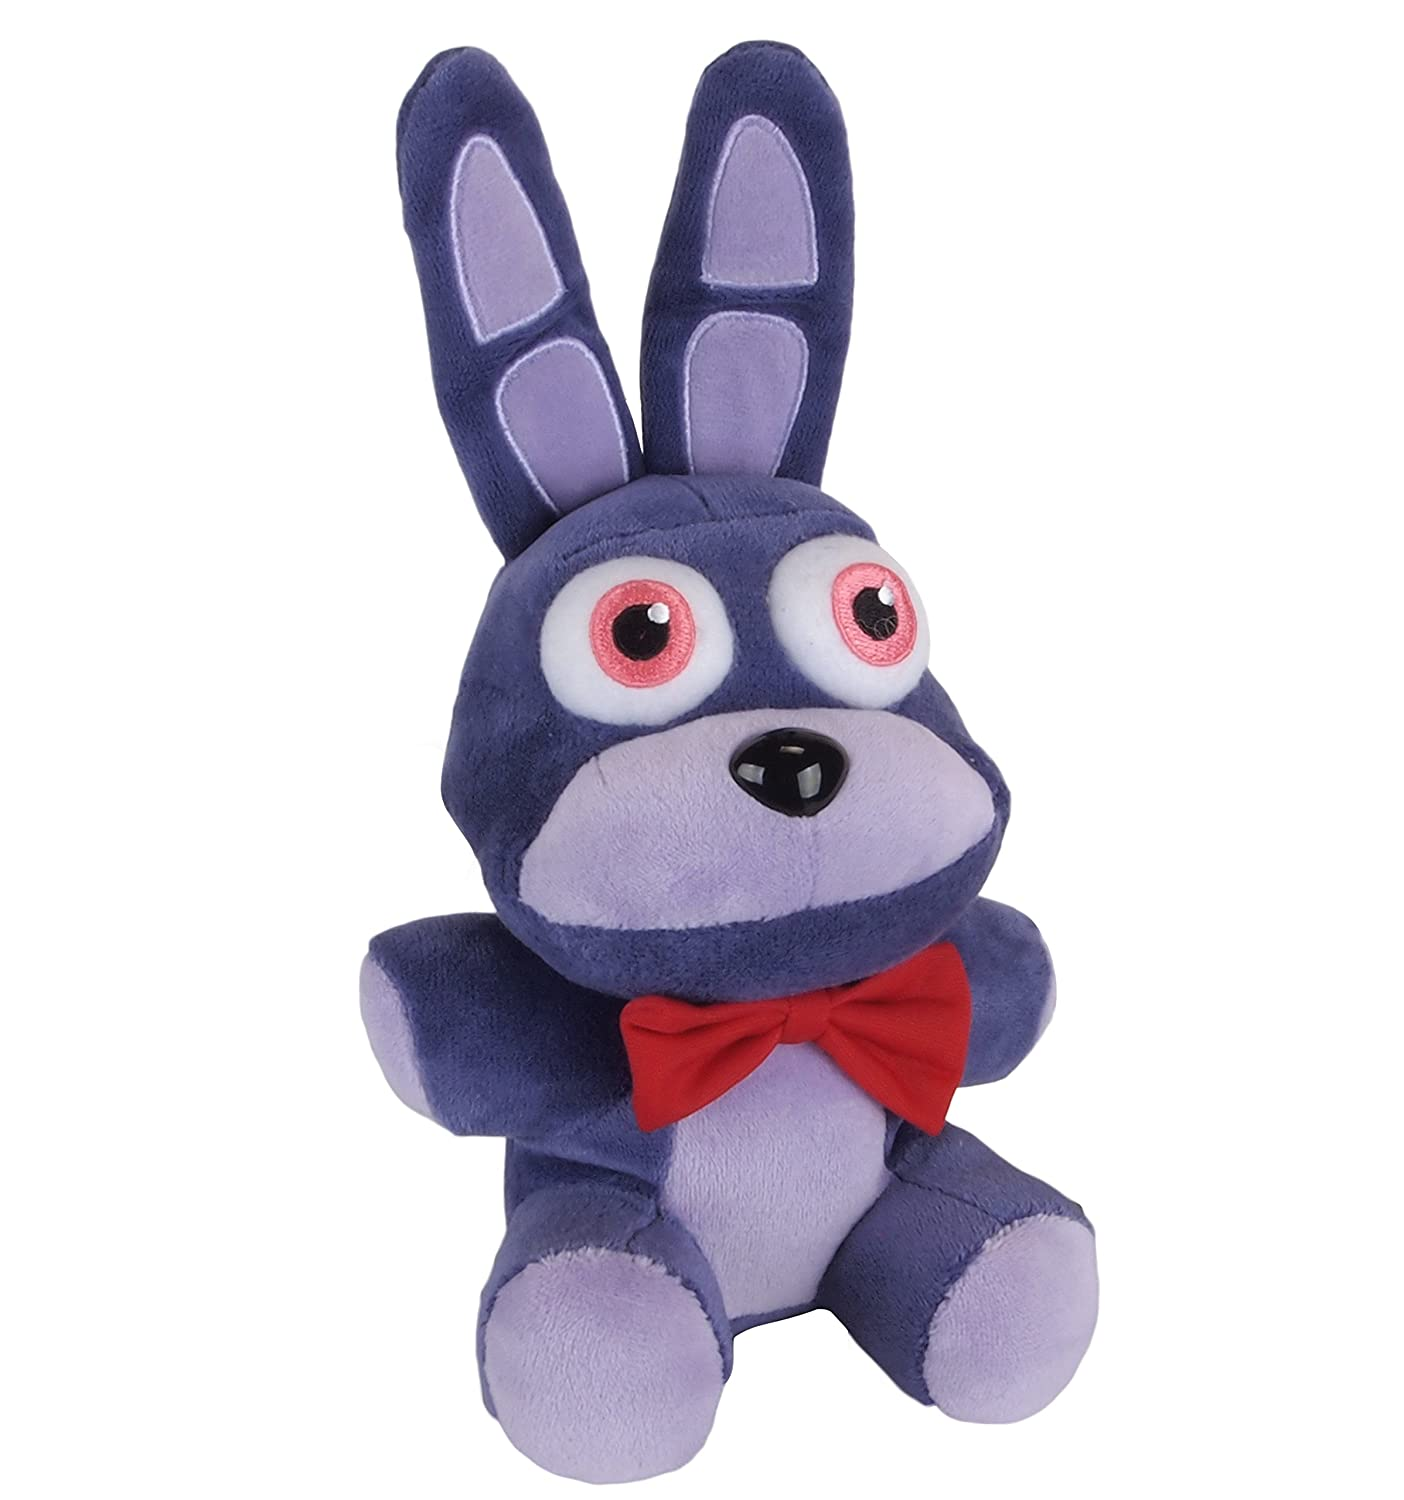 How to make your own five nights at freddys foxy plush - Five Nights At Freddy S 6 Plush Bonnie